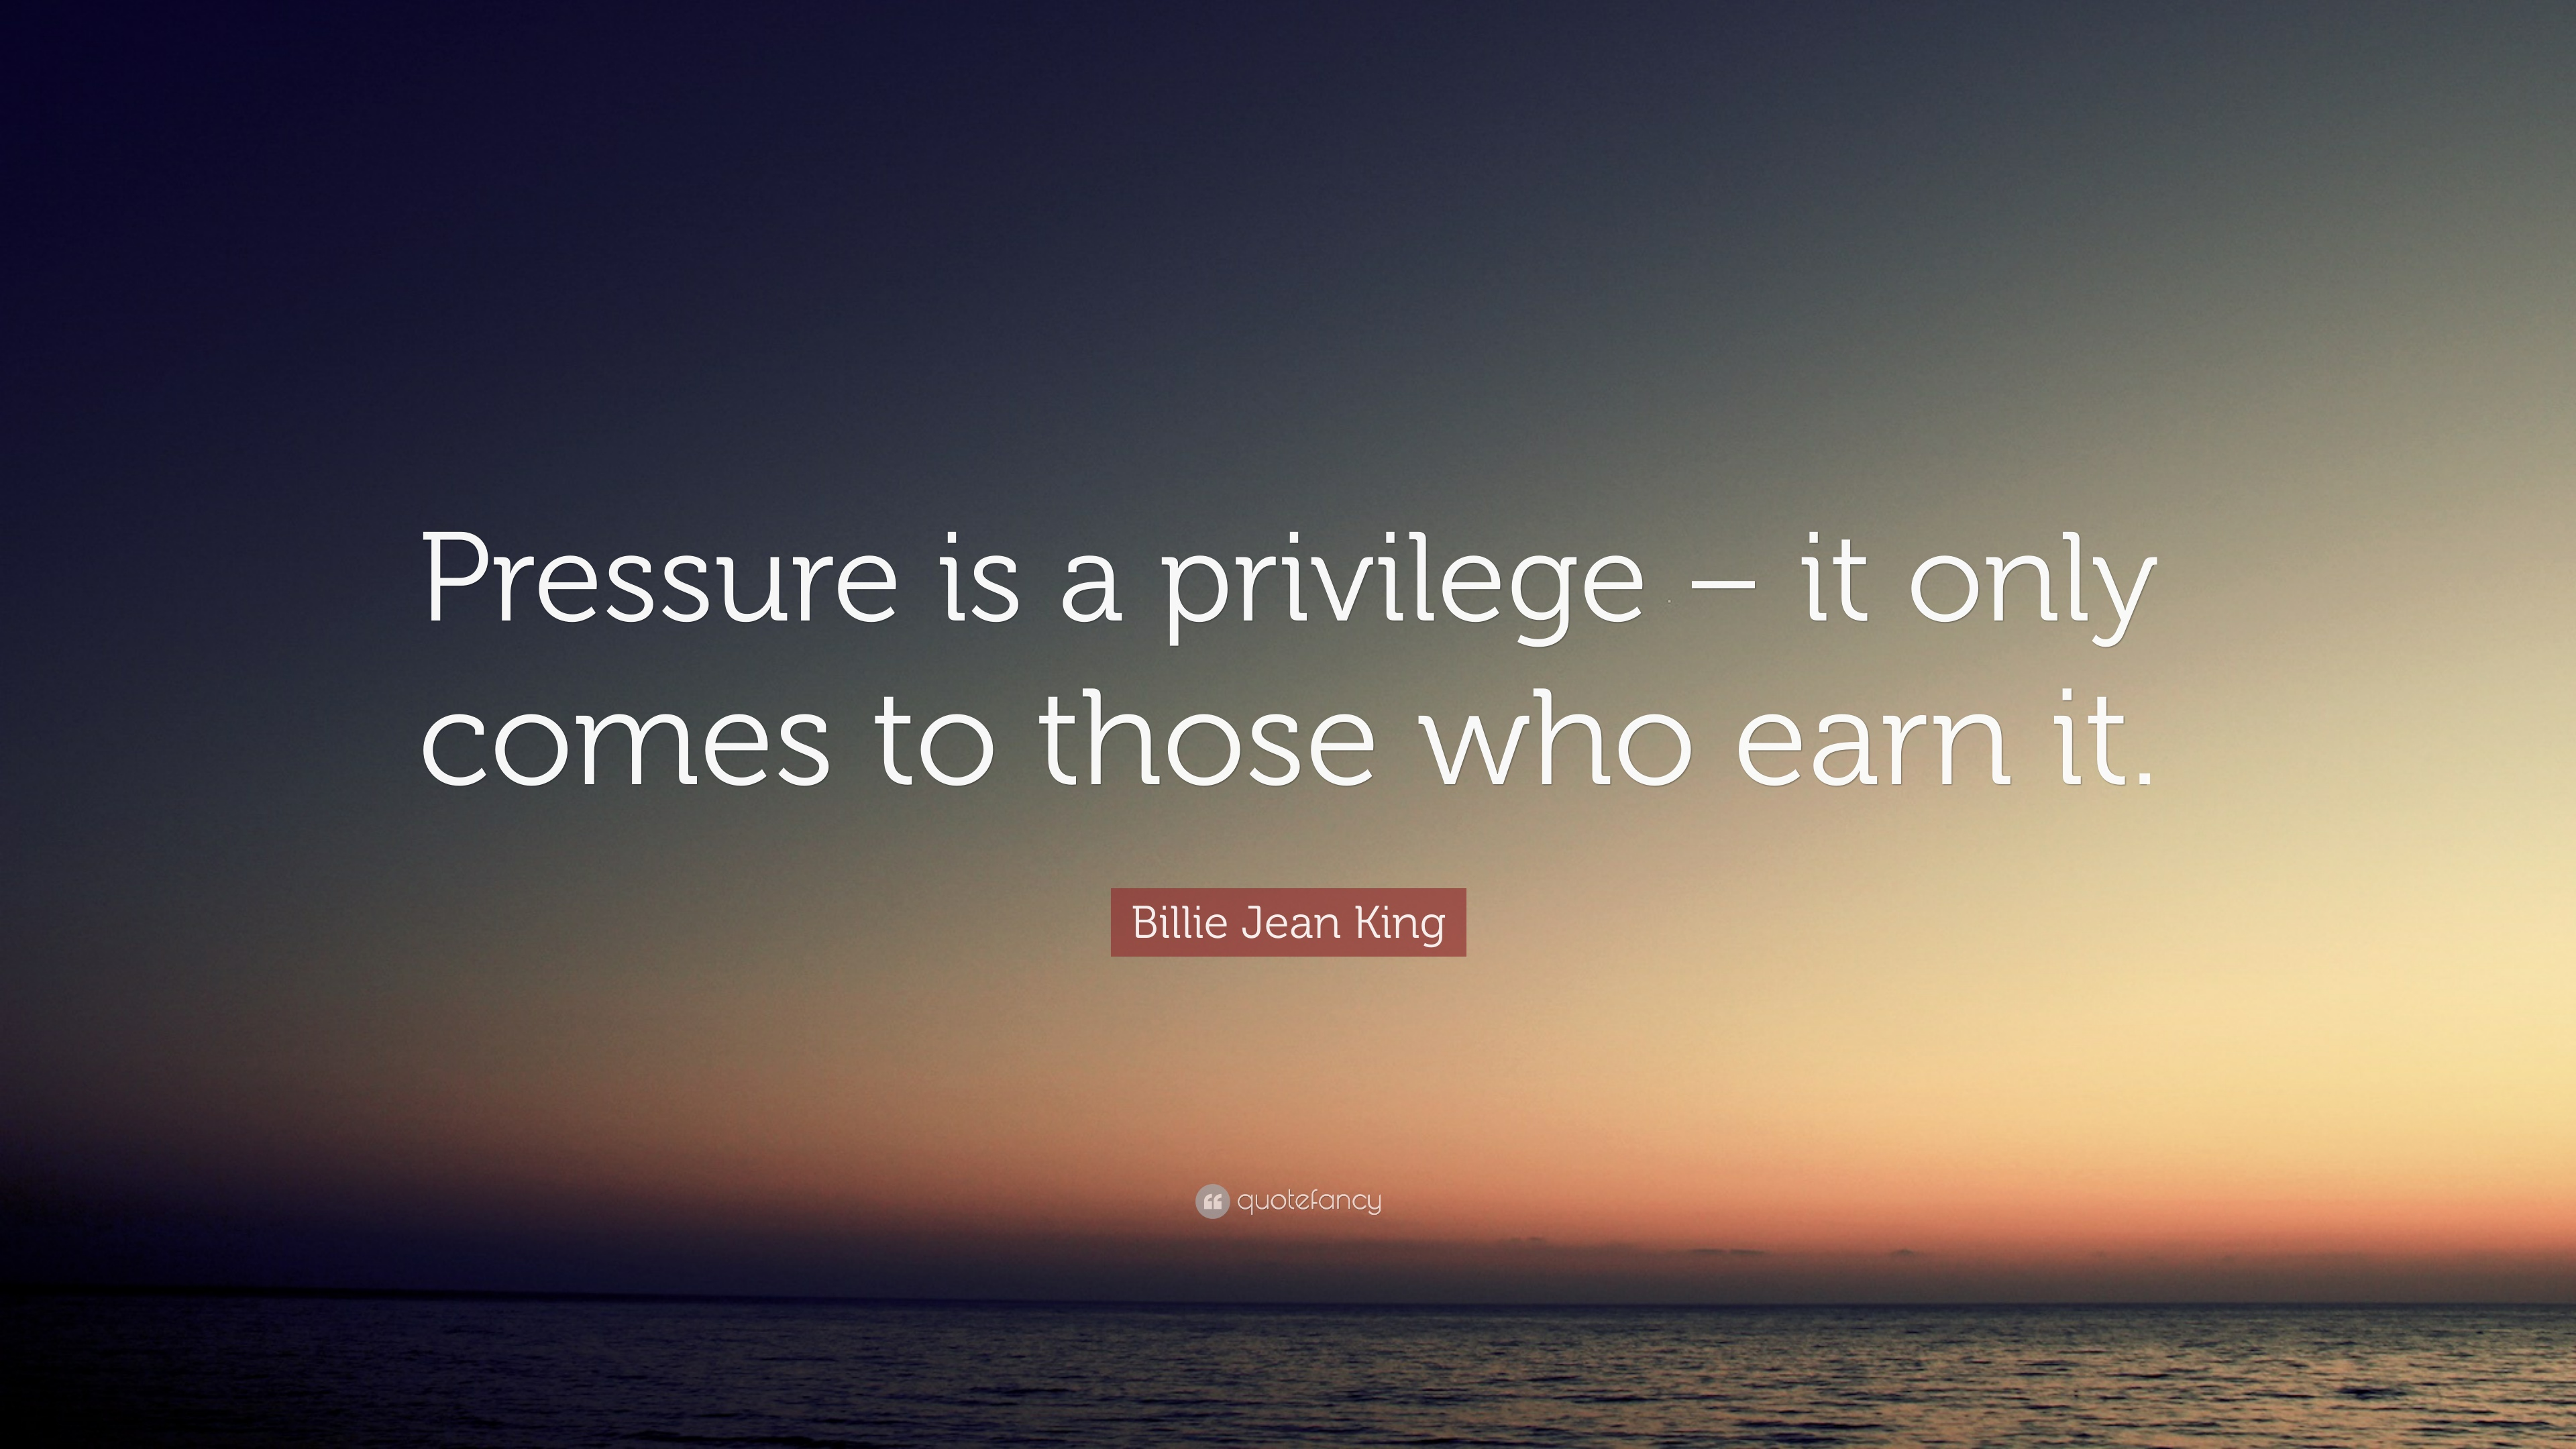 Billie Jean King Quote Pressure Is A Privilege It Only Comes To